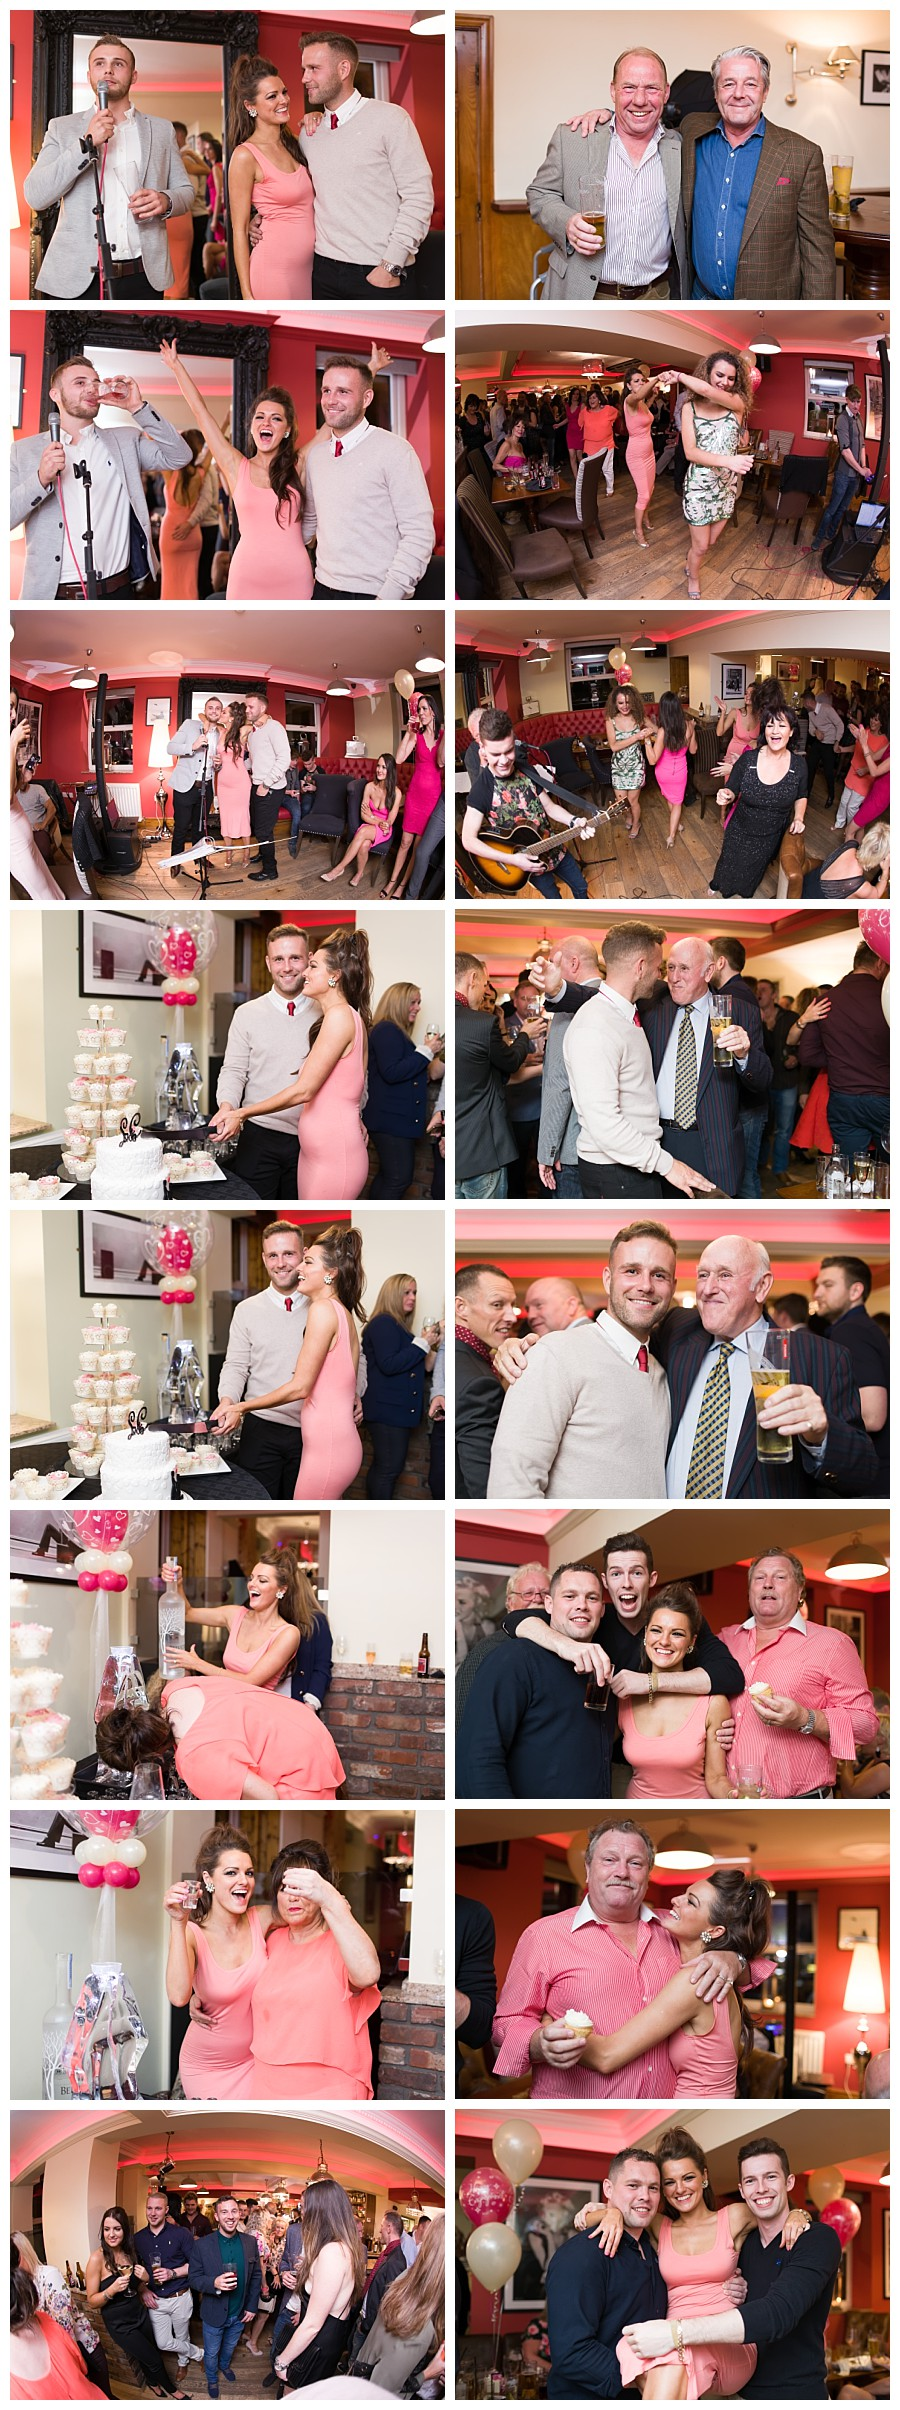 Event photography Baildon, photographer party Baildon, Little Blue Orange restaurant photography